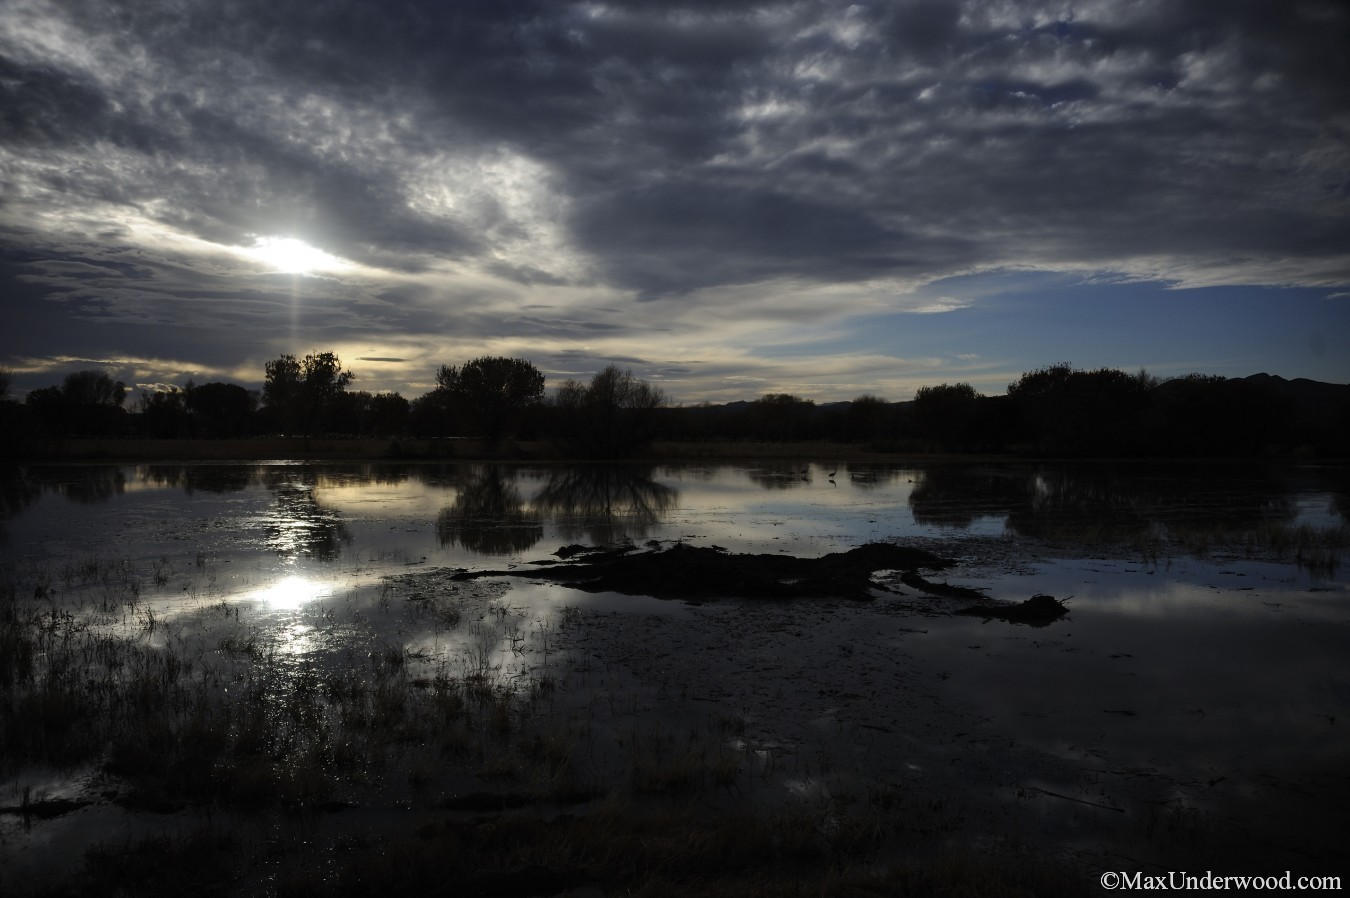 Bosque del Apache at sunset, marsh, swamp, swamplands, cloudy, San Antonio, NM. Nature photography.